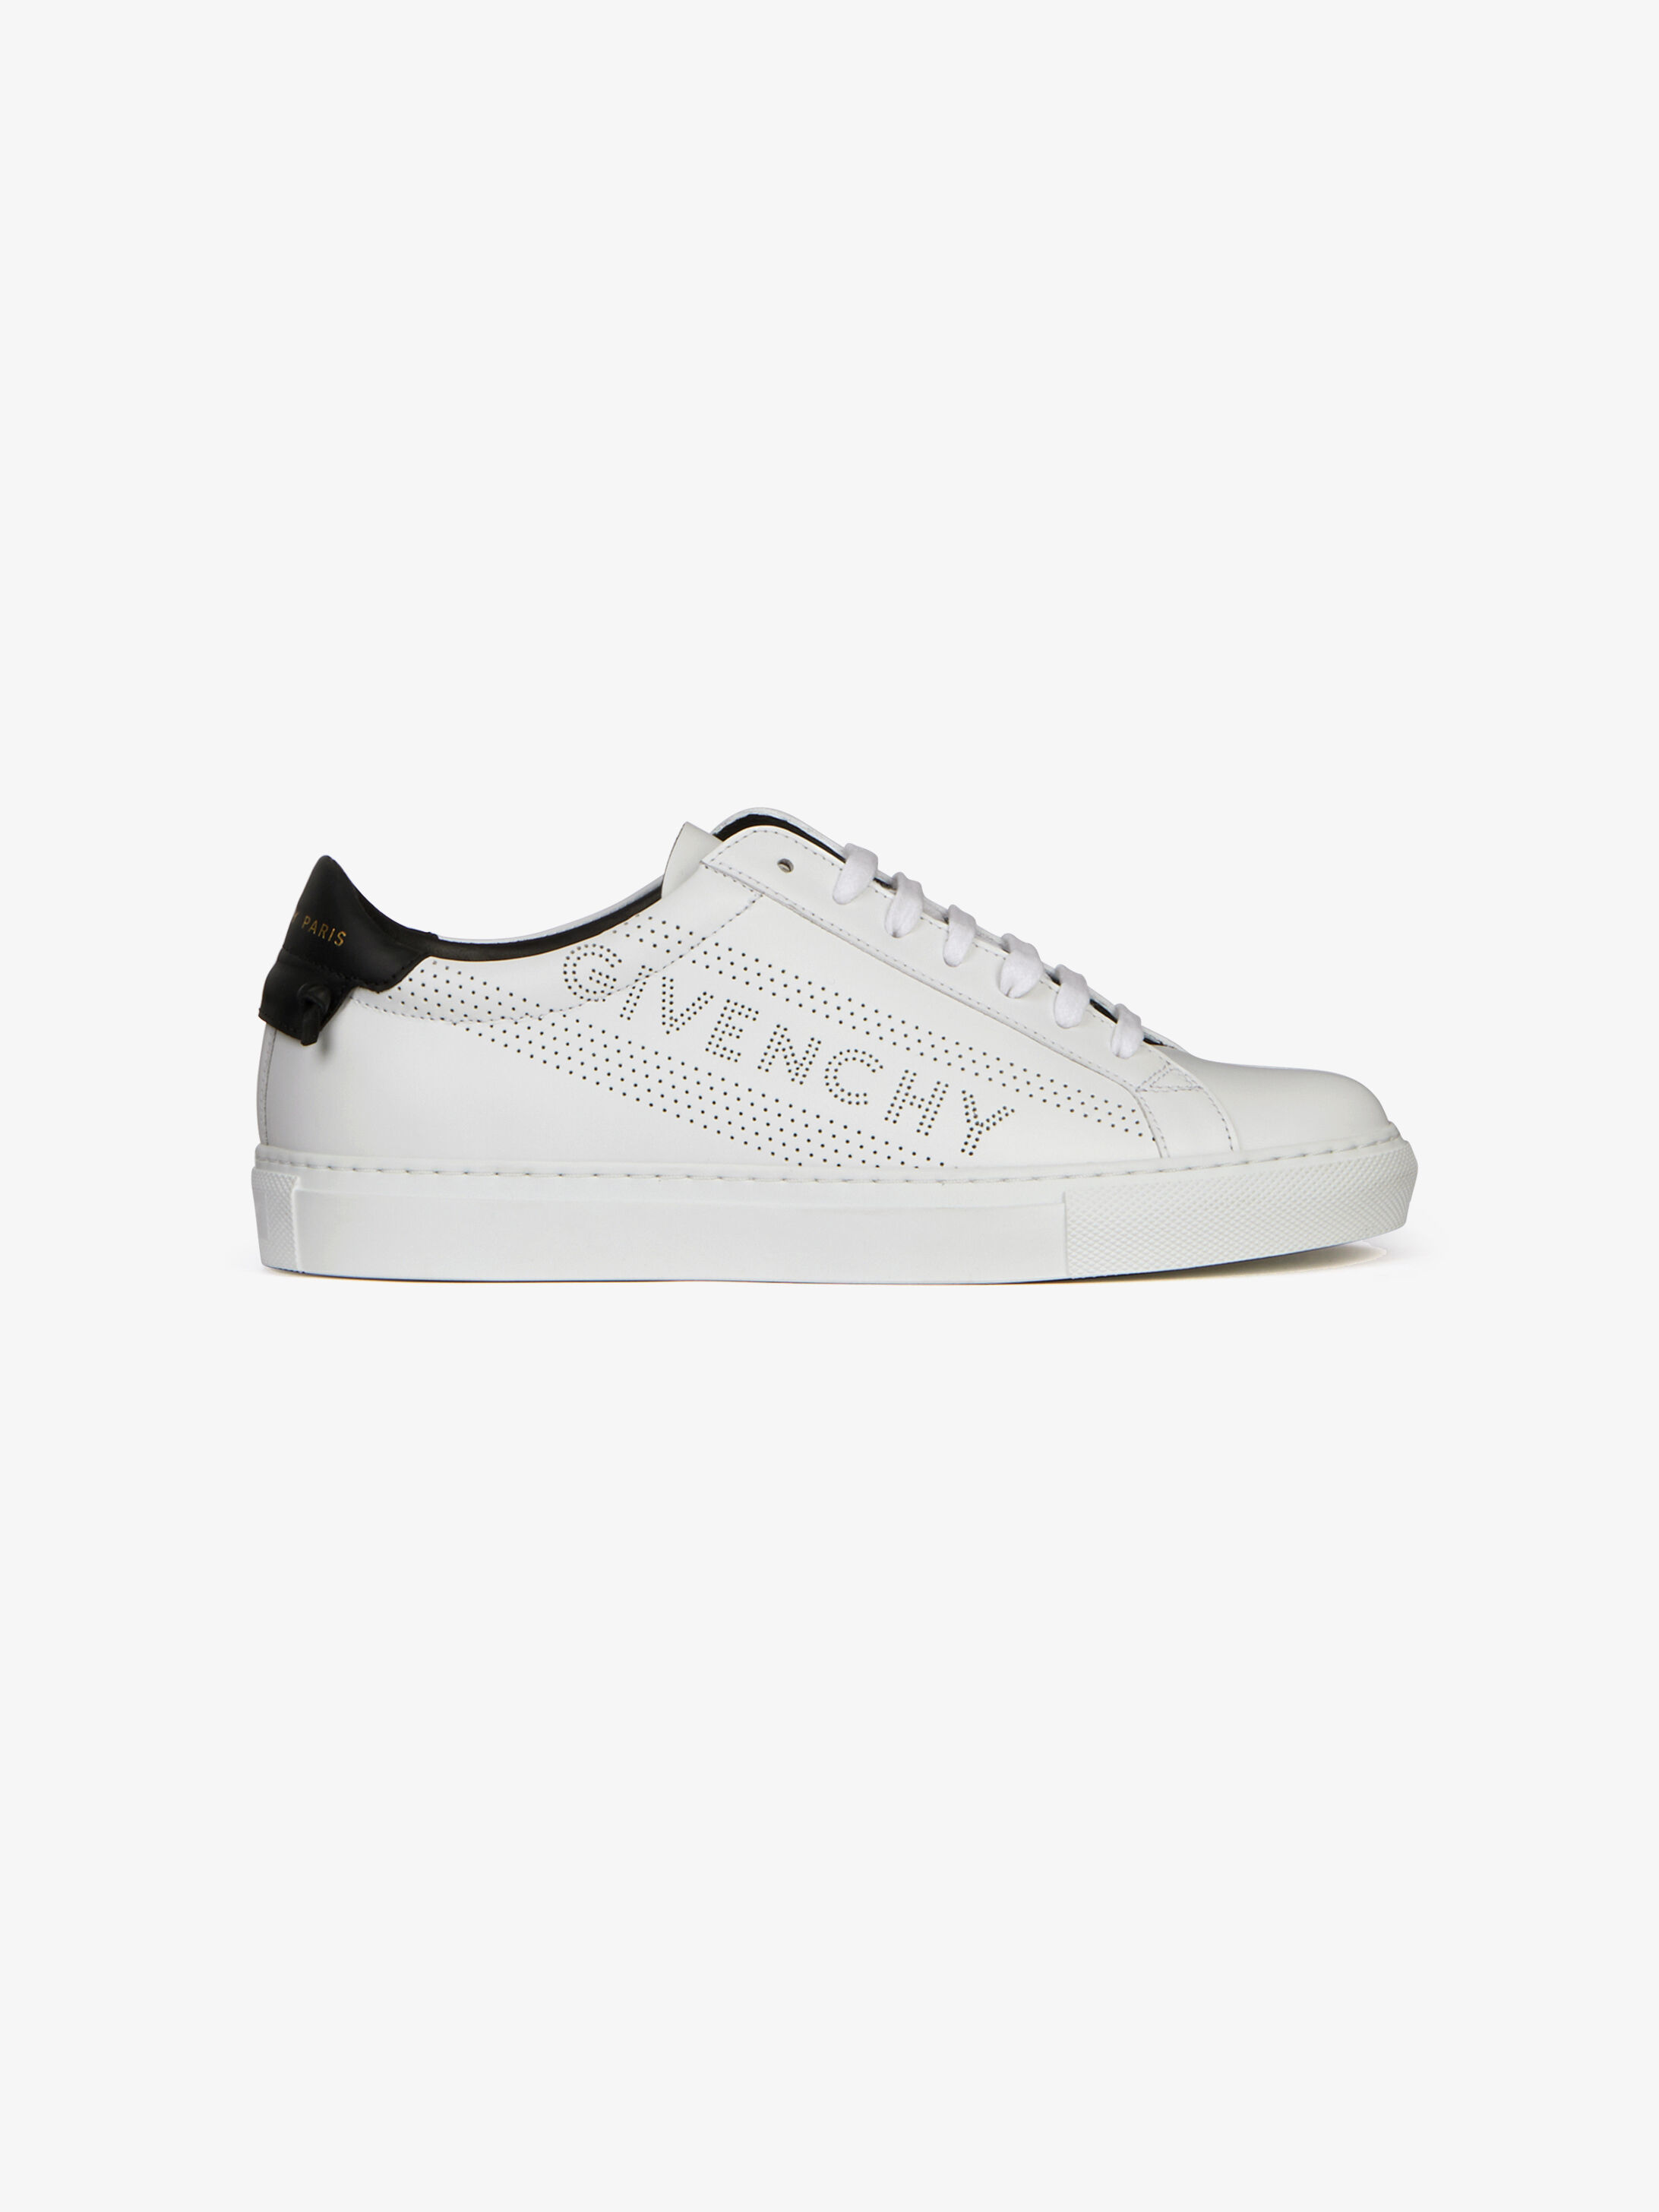 6396fef00c6e Women's Sneakers collection by Givenchy. | GIVENCHY Paris